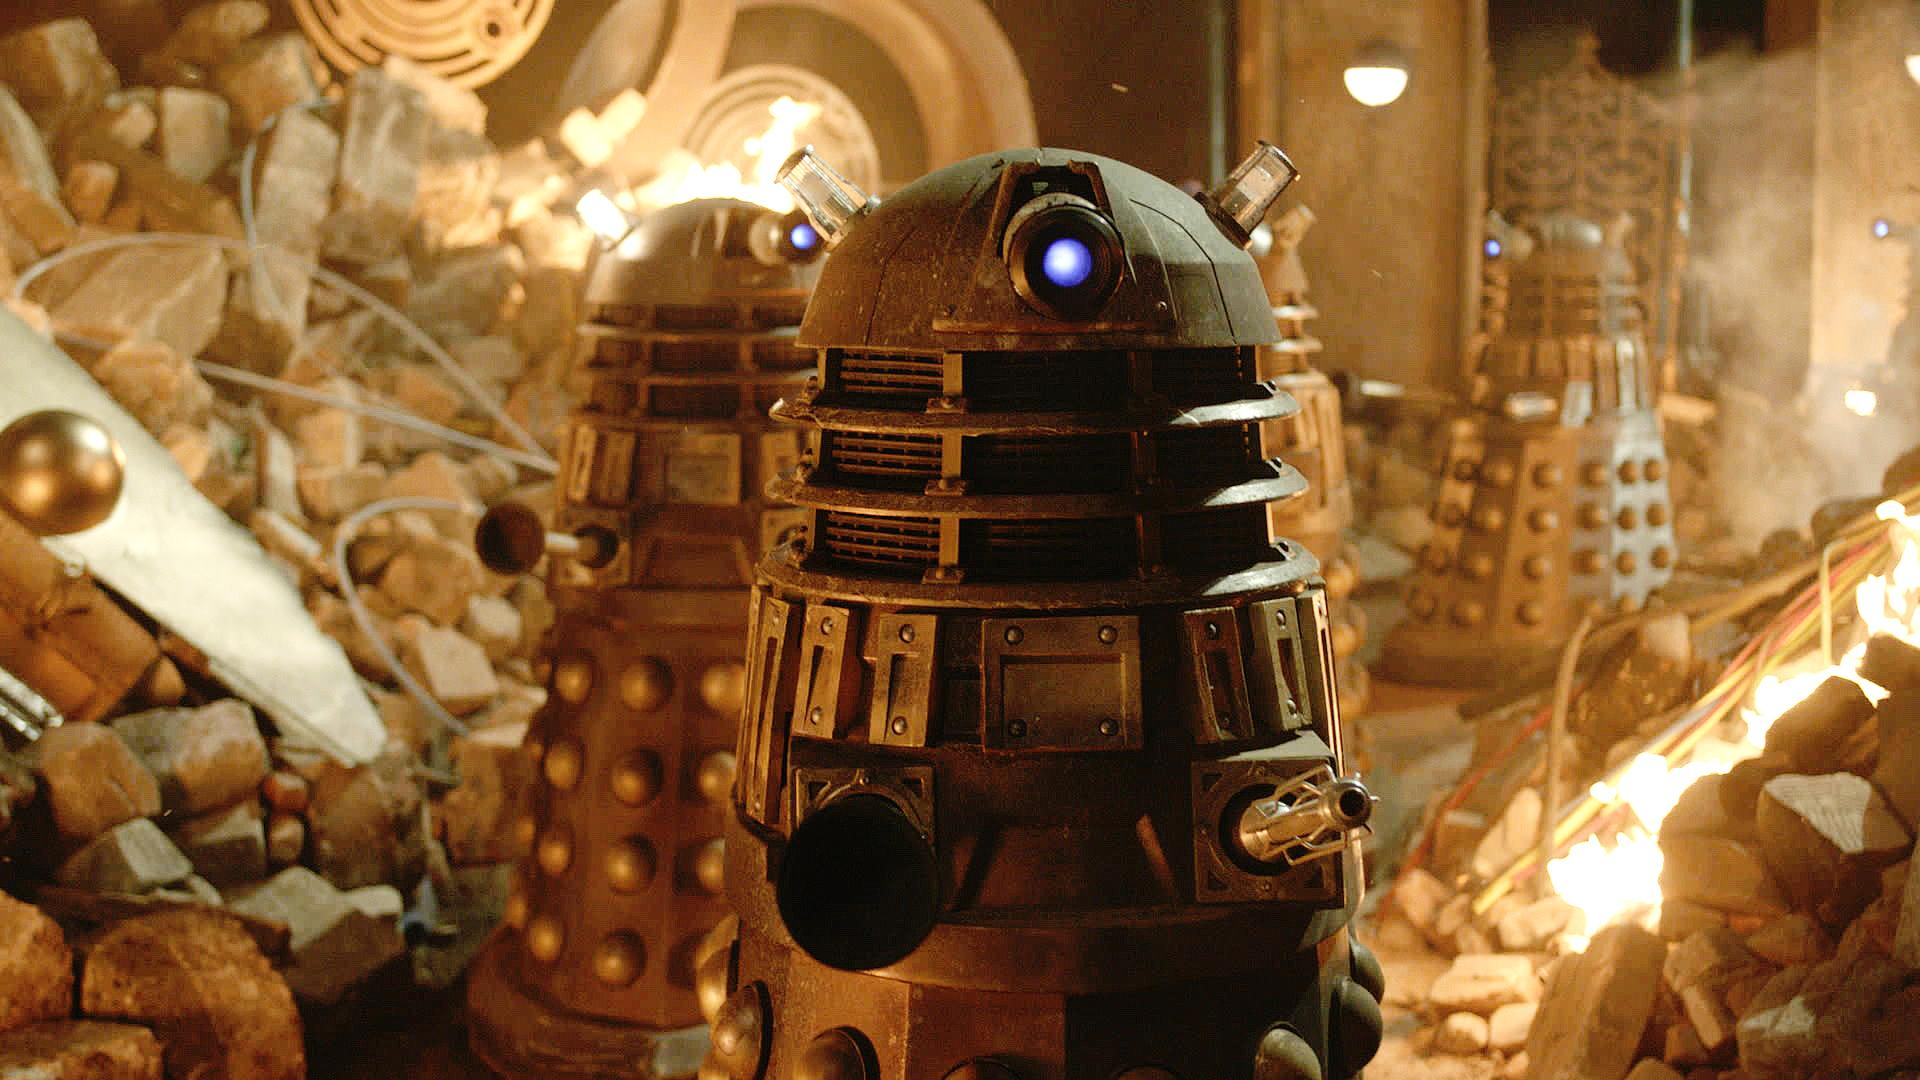 50th Anniversary Special: First Official Dalek photo (Credit: BBC Doctor Who (via Twitter))